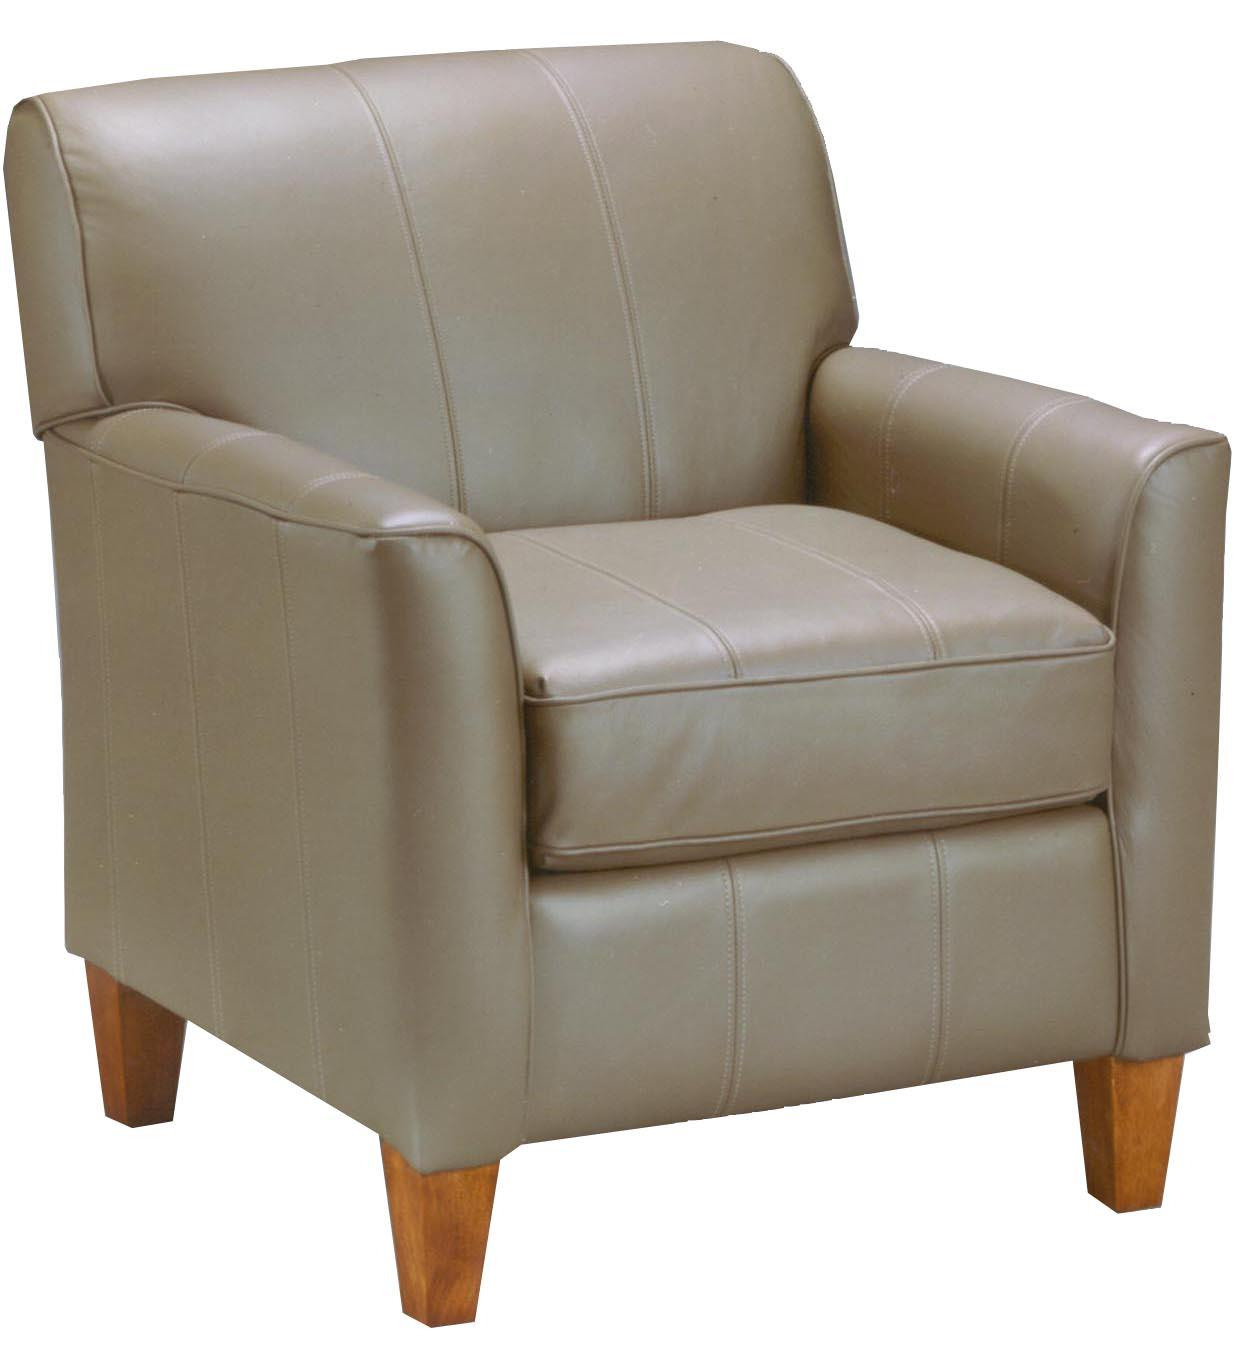 Best Home Furnishings Chairs - Club Risa Club Chair - Item Number: 4190AWL